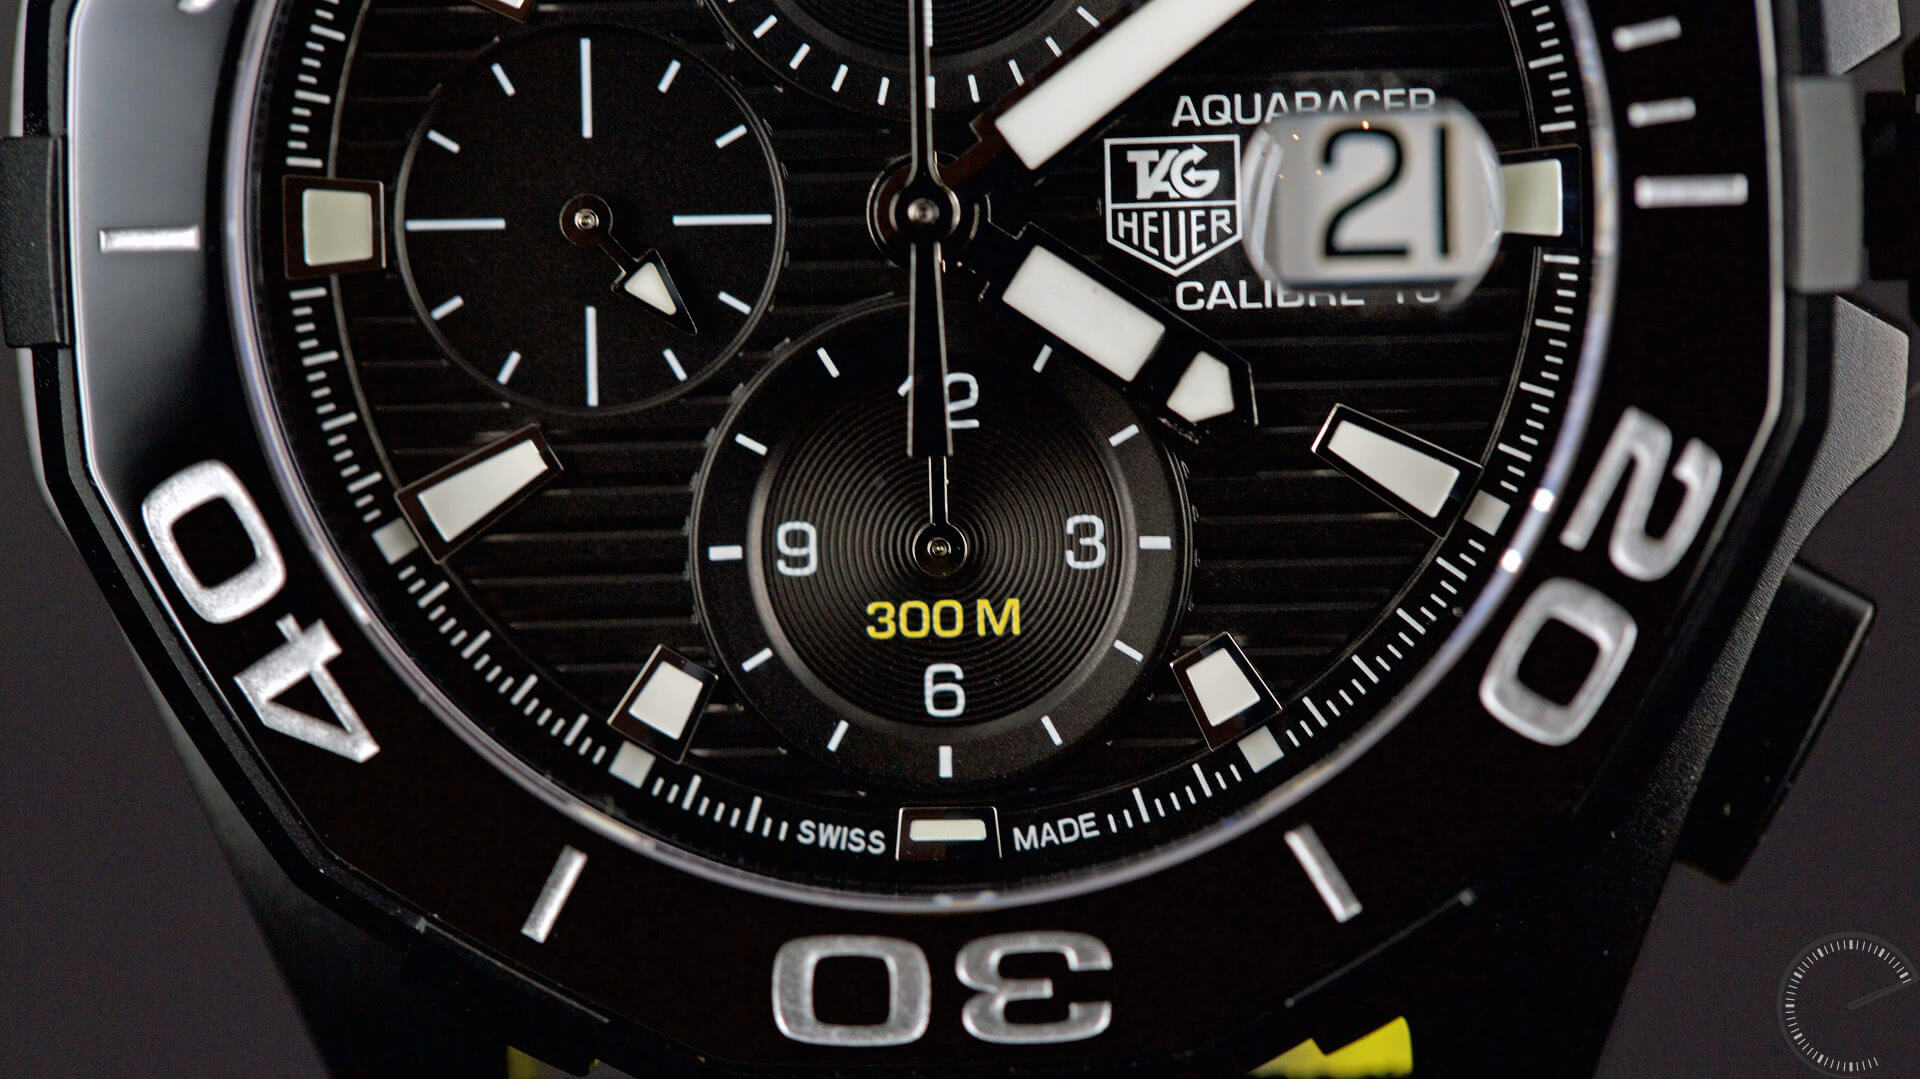 TAG_Heuer_Aquaracer_300m_(43mm)_Calibre_16_Automatic_Chronograph _Ceramic_Bezel_Black_Version_dial_detail - ESCAPEMENT MAGAZINE - watch reviews online by Angus Davies